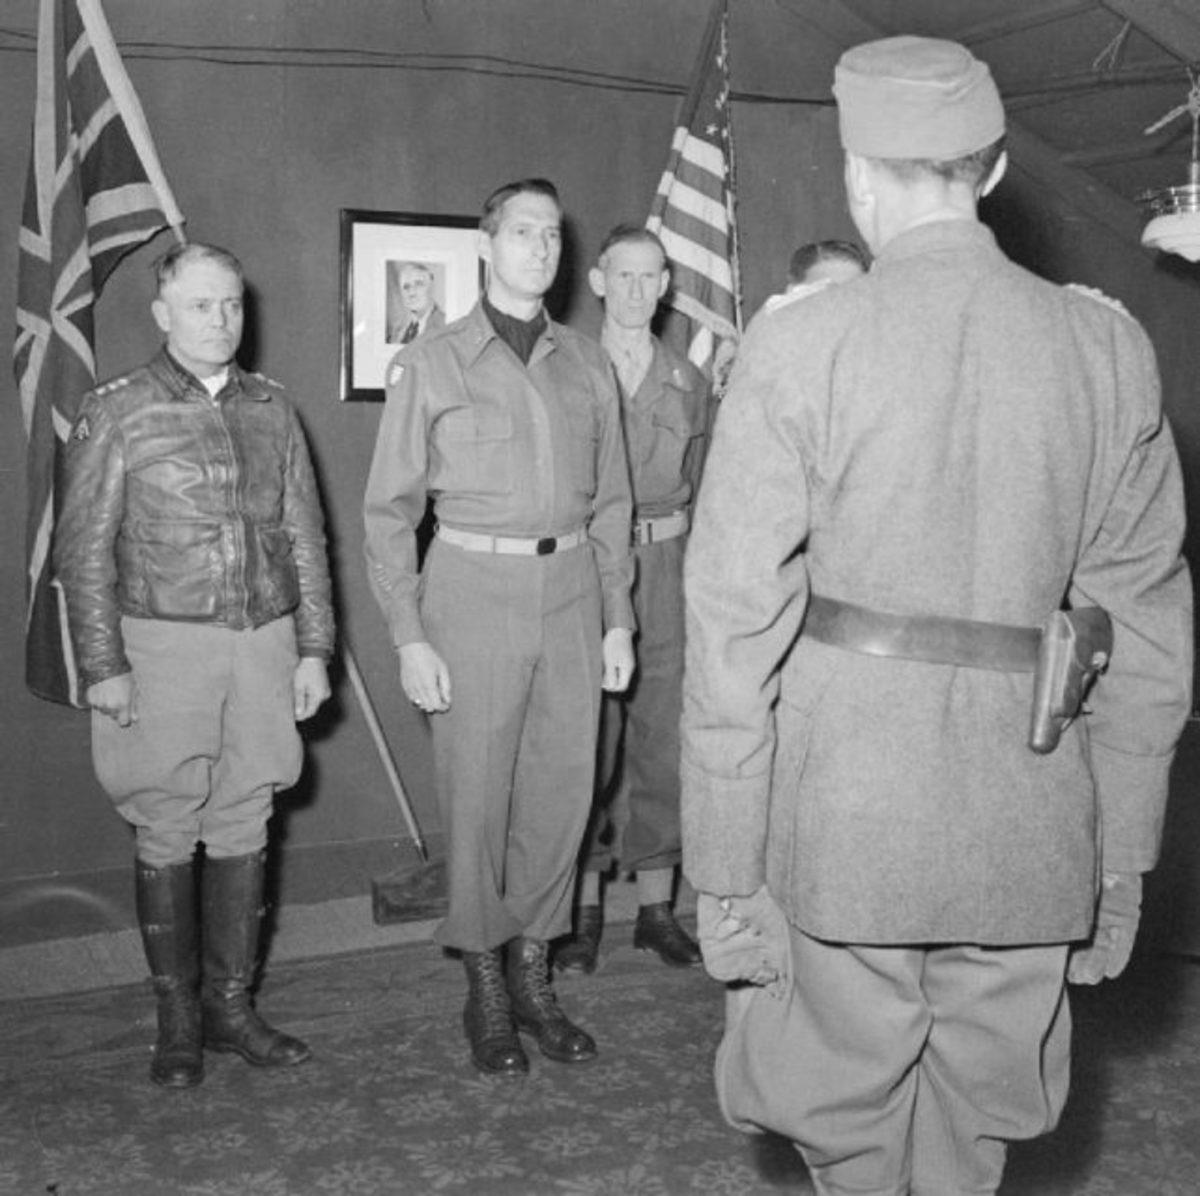 It's over - Lt. General Fridolin von Senger und Etterlin, the commander of XIV Panzer Corps, meets Clark, Lieutenant General Sir Richard McCreery and Truscott. at 15th Army Group Headquarters,